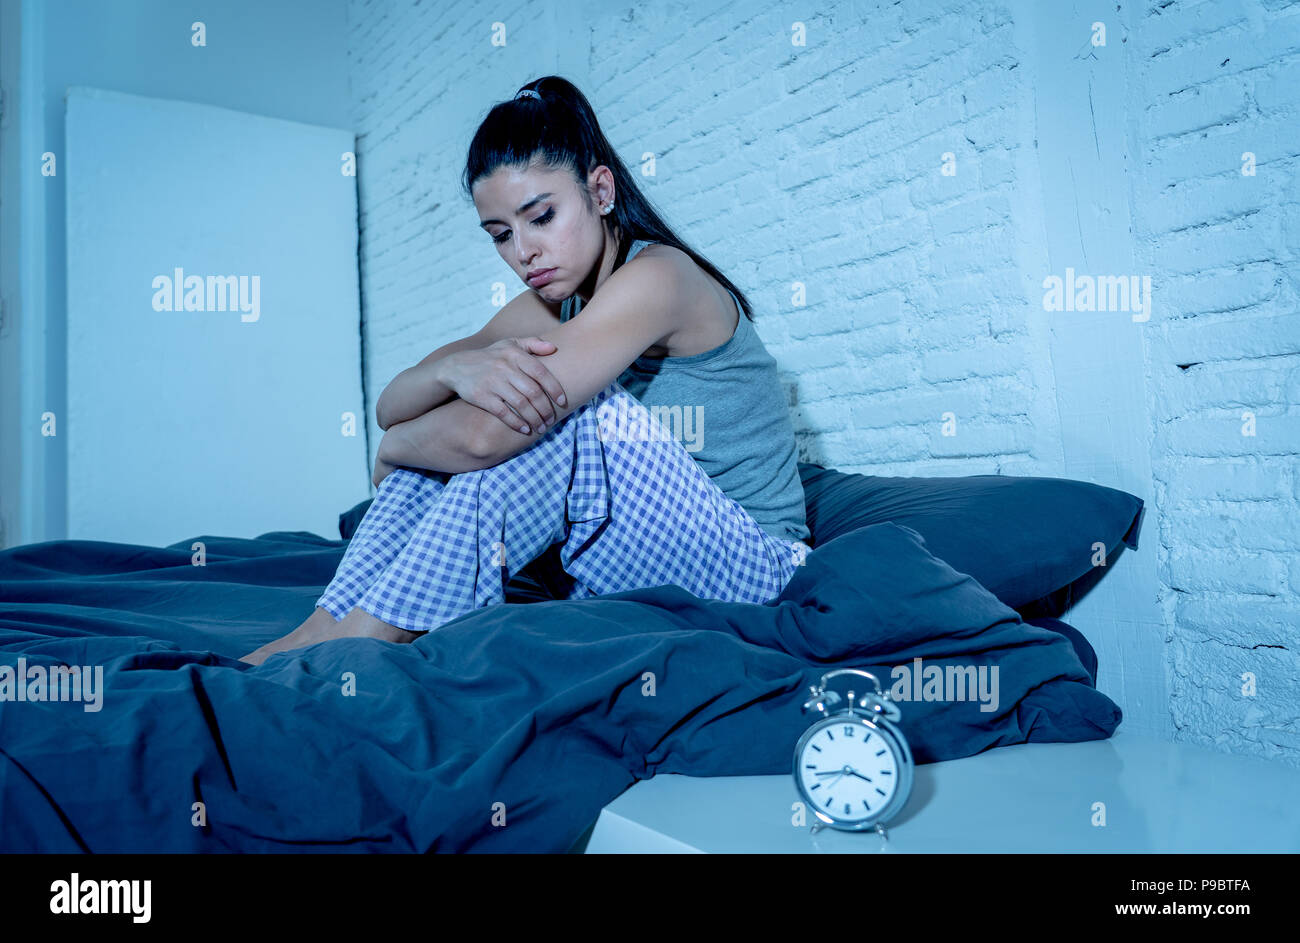 young beautiful hispanic woman at home bedroom lying in bed late at night trying to sleep suffering insomnia sleeping disorder or scared on nightmares - Stock Image